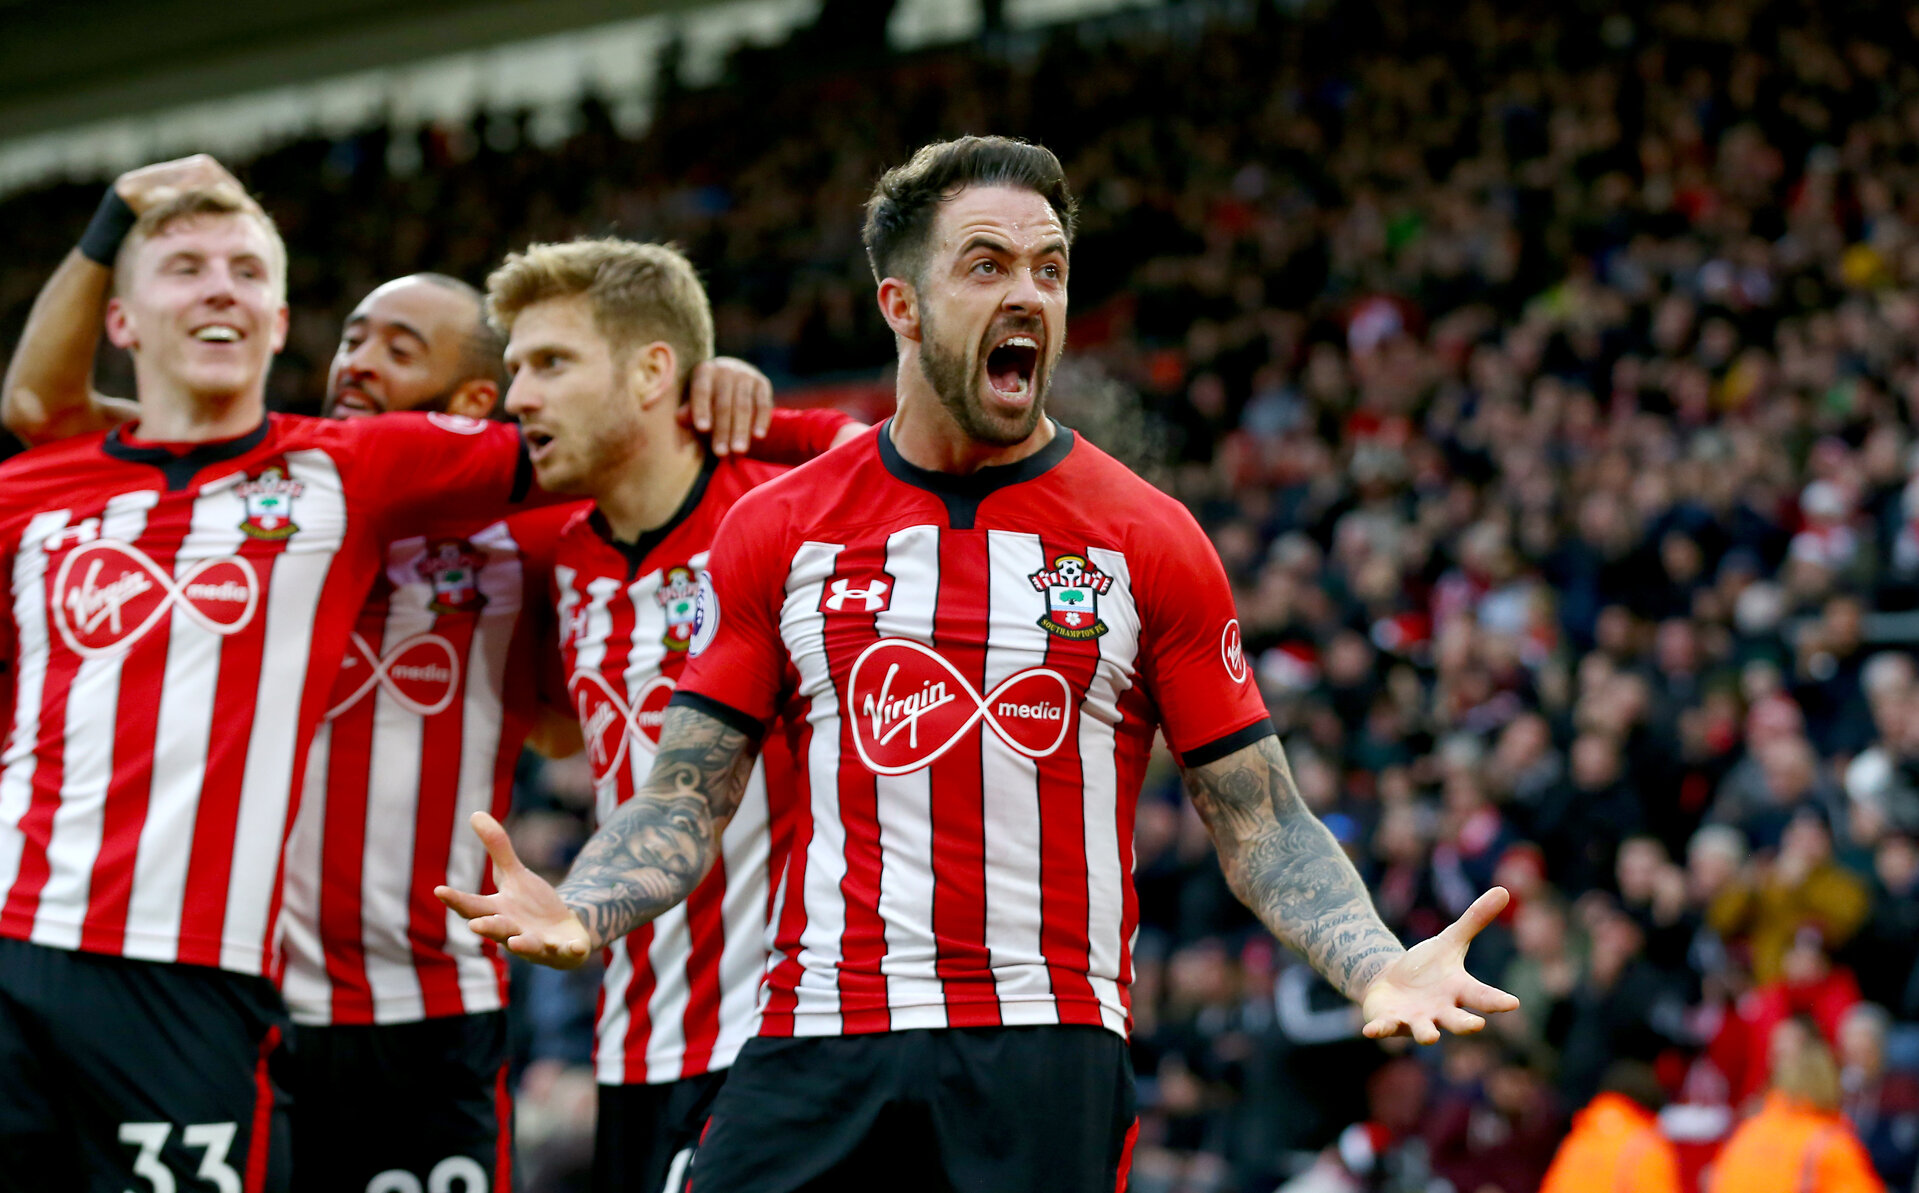 SOUTHAMPTON, ENGLAND - DECEMBER 16: Danny Ings of Southampton during the Premier League match between Southampton FC and Arsenal FC at St Mary's Stadium on December 15, 2018 in Southampton, United Kingdom. (Photo by Matt Watson/Southampton FC via Getty Images)